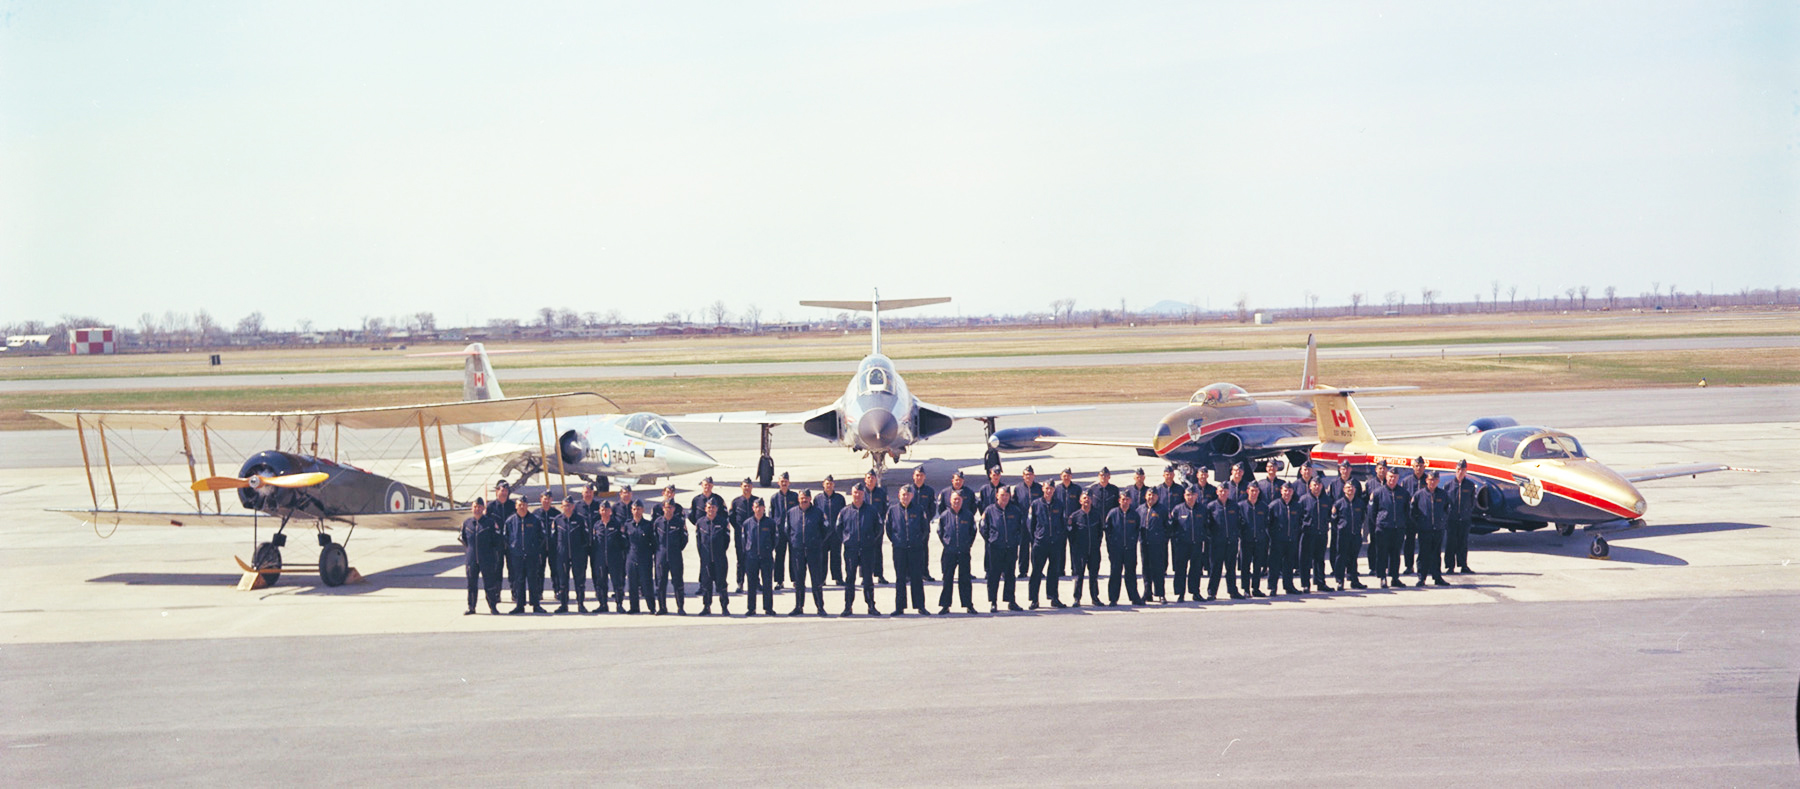 1967 Canadian Armed Forces Golden Centennaires aircrew and groundcrew gather for a photograph in front of five of the team's show aircraft: from left, an Avro 504K biplane, a CF-104 Starfighter, a CF-101 Voodoo, a CT-133 Silver Star, and a CT-114 Tutor (the primary Centennaire aircraft). PHOTO: DND Archives, REC67-479